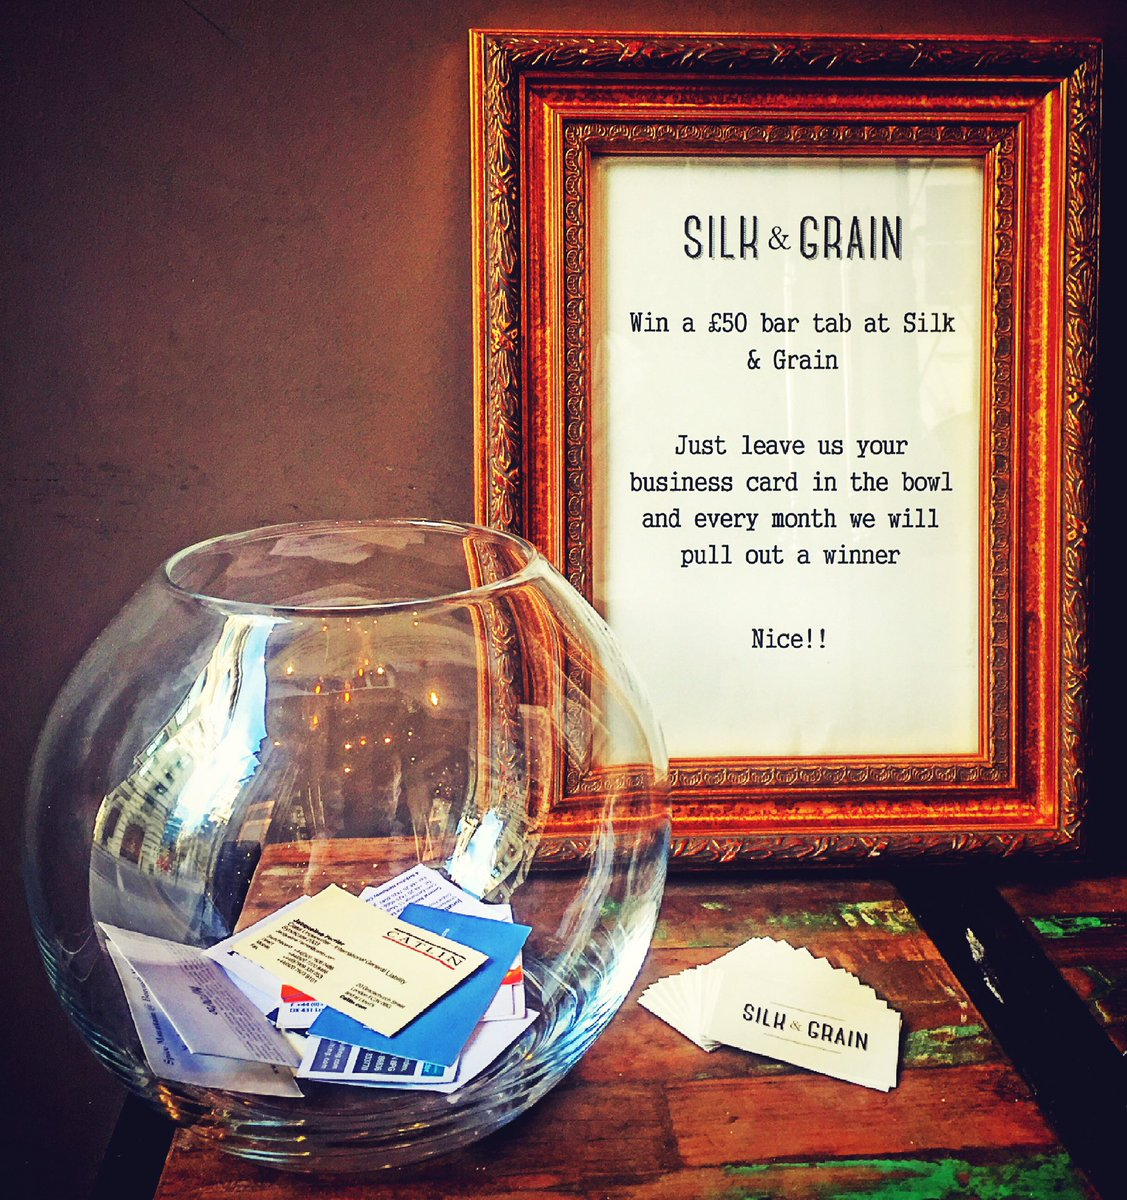 Silk and grain on twitter leave your business card in the fish silk and grain on twitter leave your business card in the fish bowl for your chance to win a 50 bar tab colourmoves